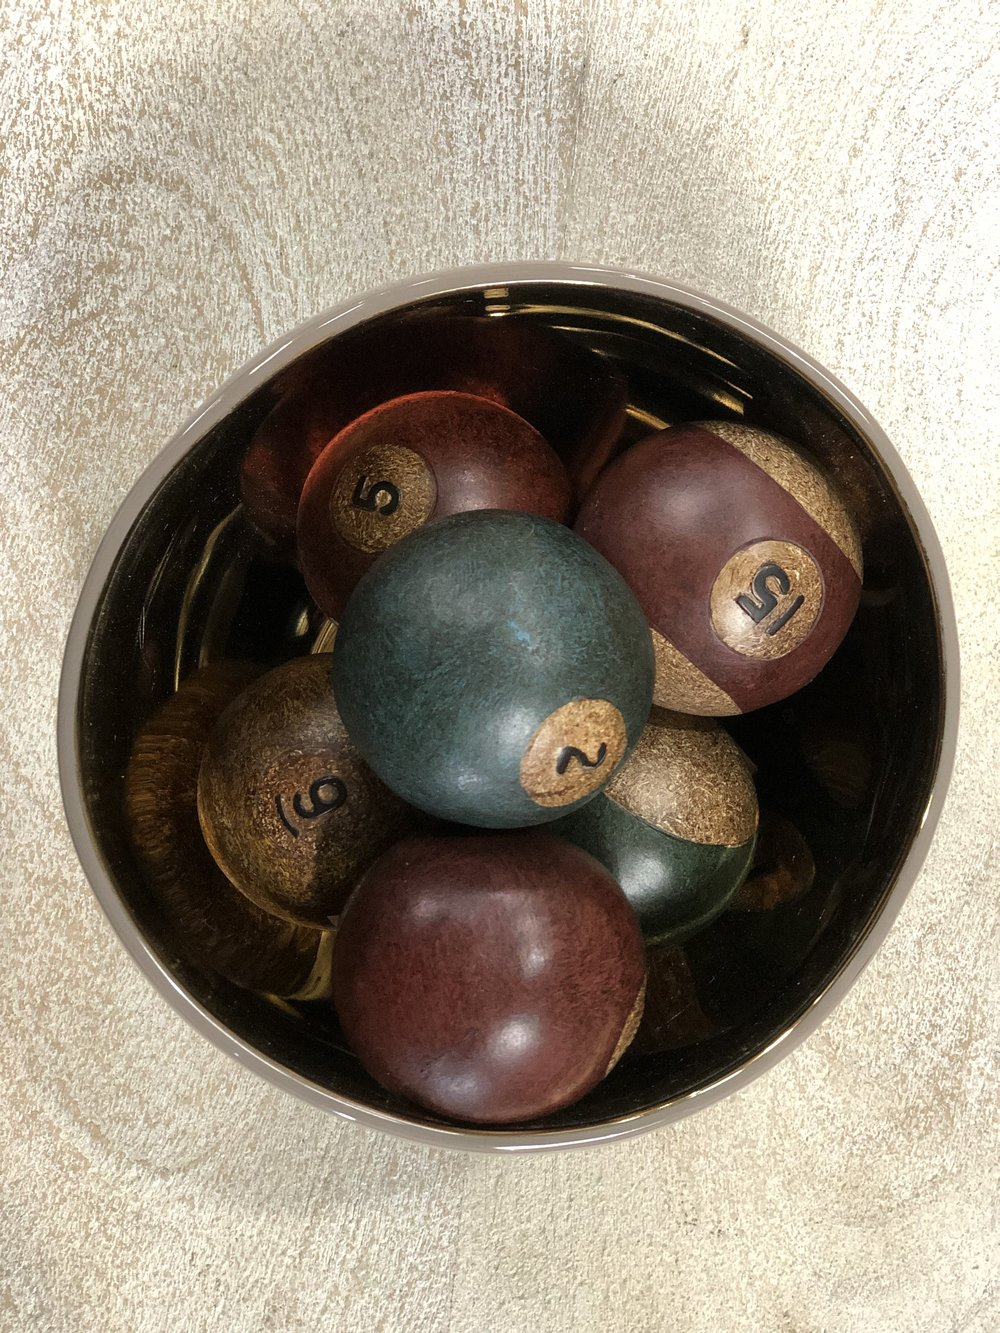 Koballen Ornamental Balls - These wooden billiard balls will bring warmth when set on a shelf placed in a wooden bowl. Keep them on your coffee table in times of harmony, or just out of reach when your in-laws have overstayed their requisite 3 day stay.